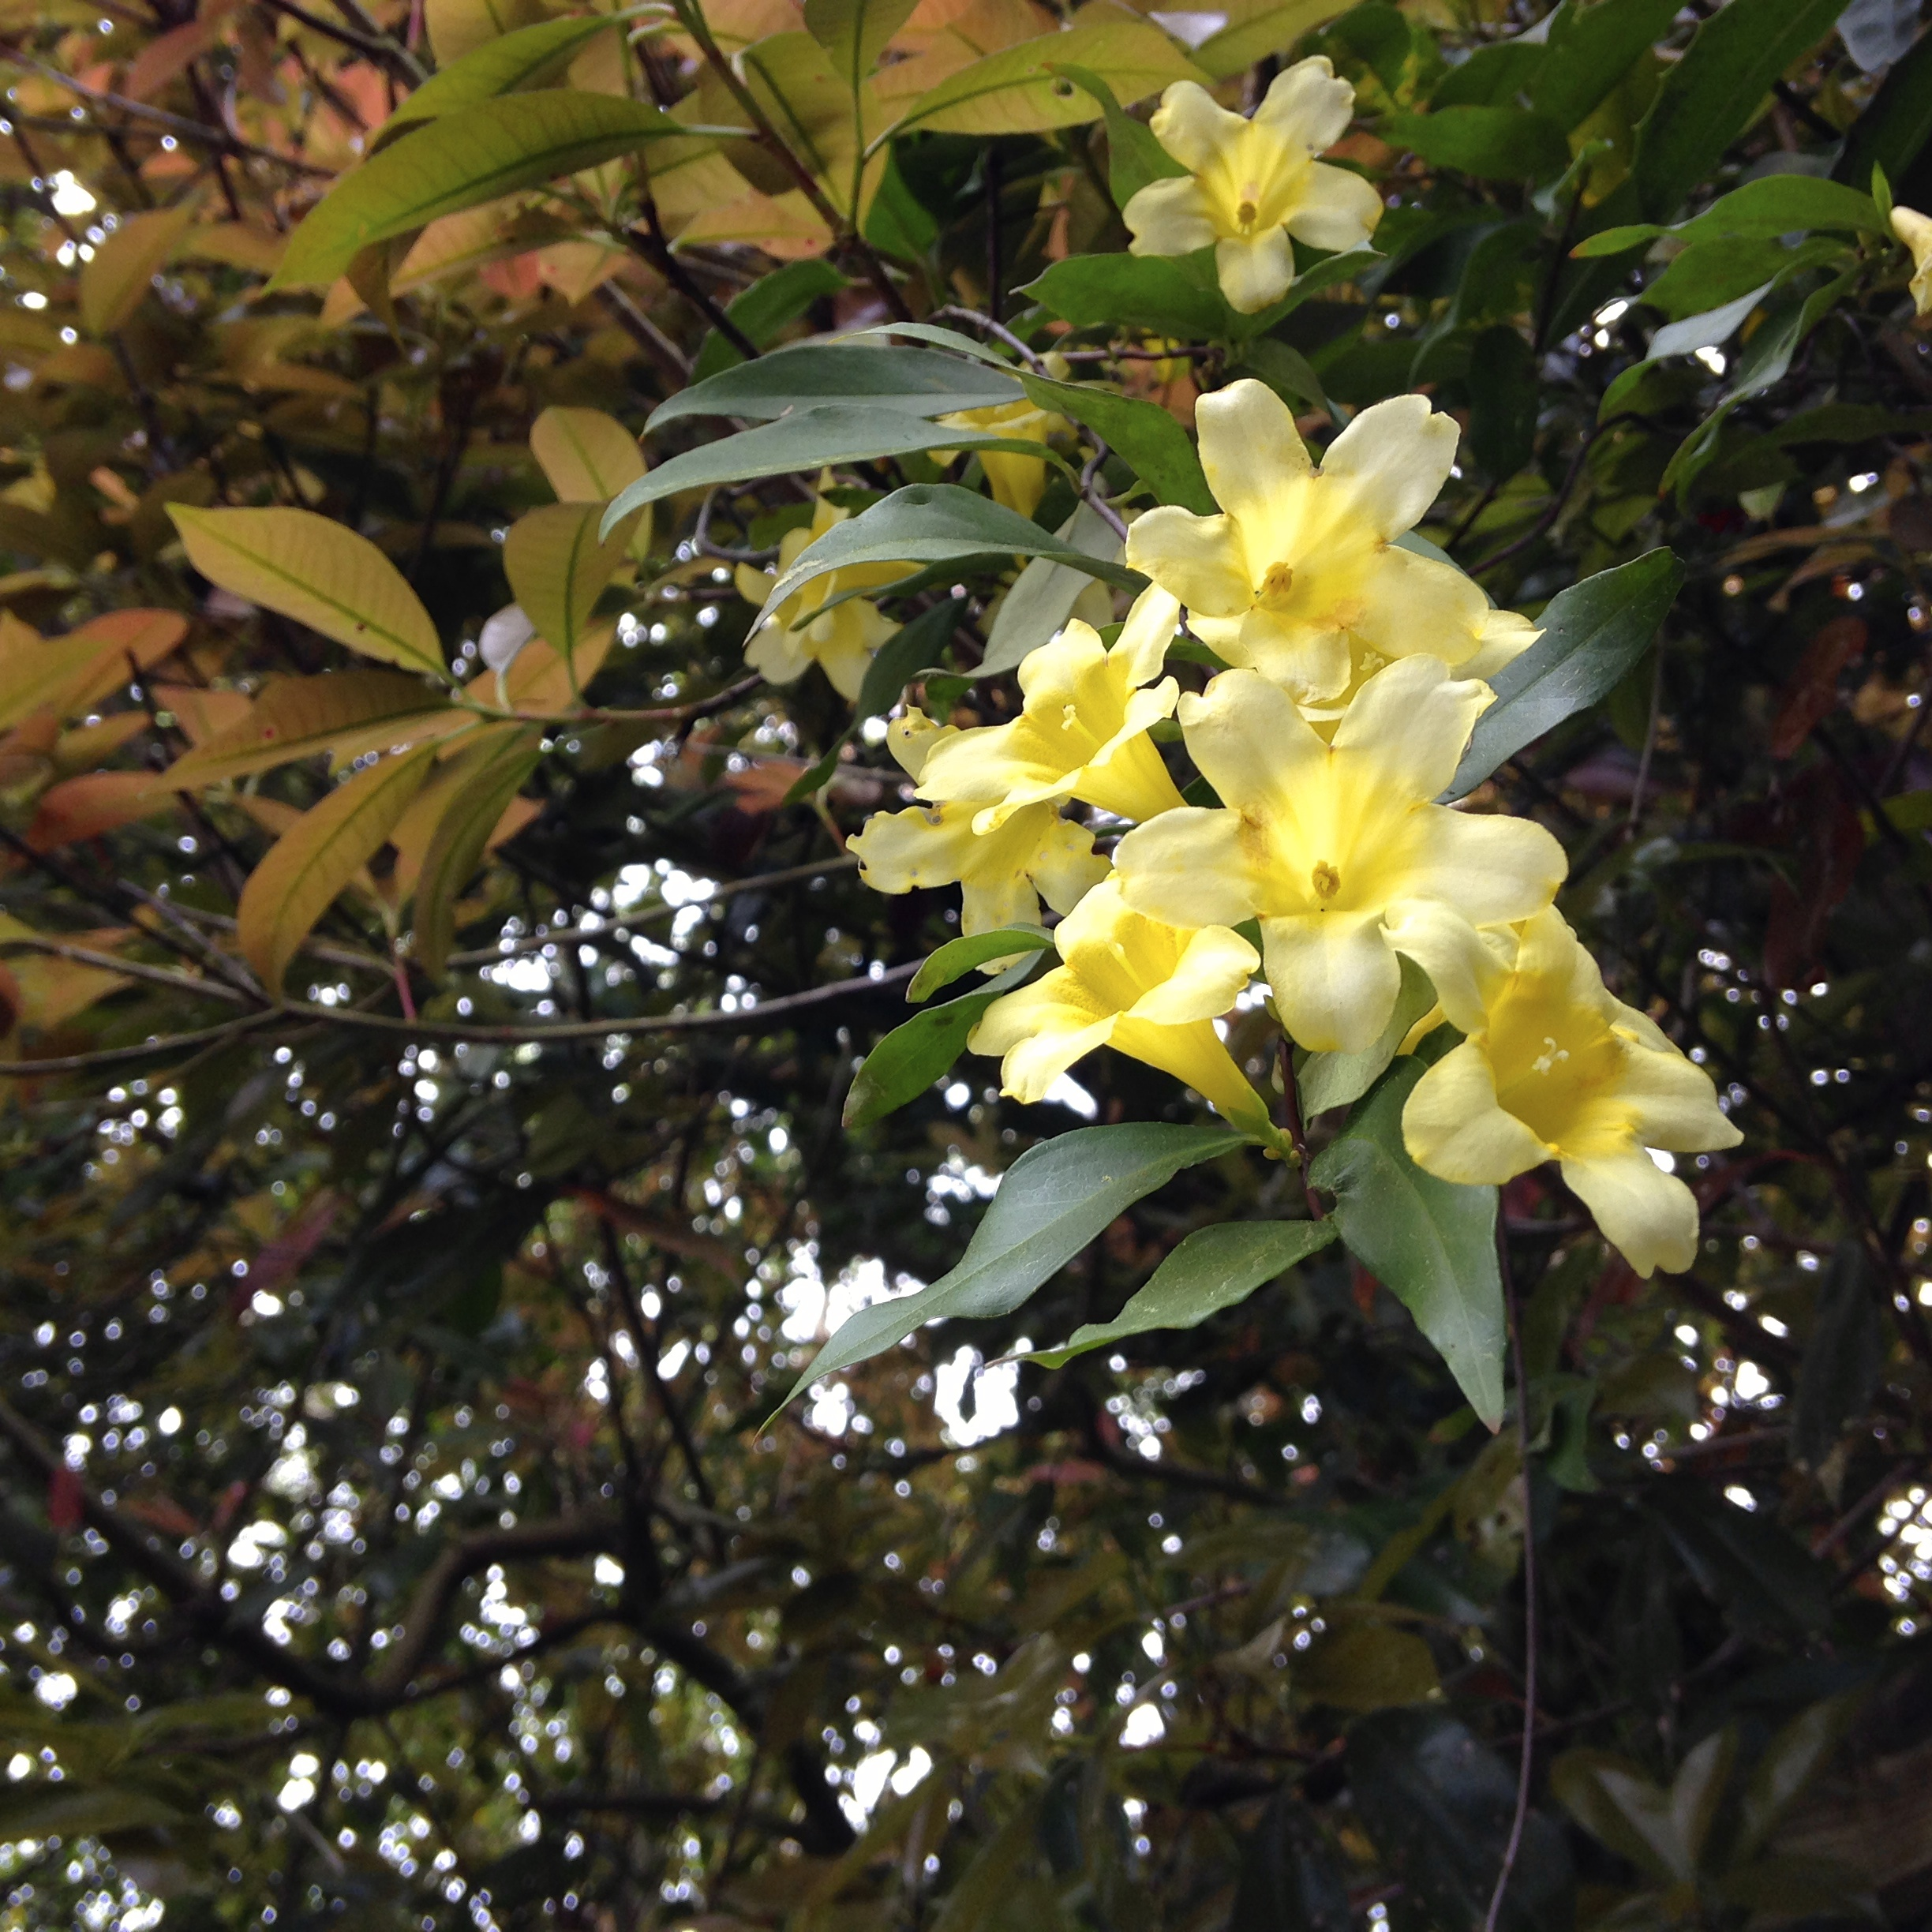 Perhaps less fragrant but no less beautiful, I took note asCarolina jasmine danced on its vine in yellow splendor at the far end of the tunnel of shade by my house.